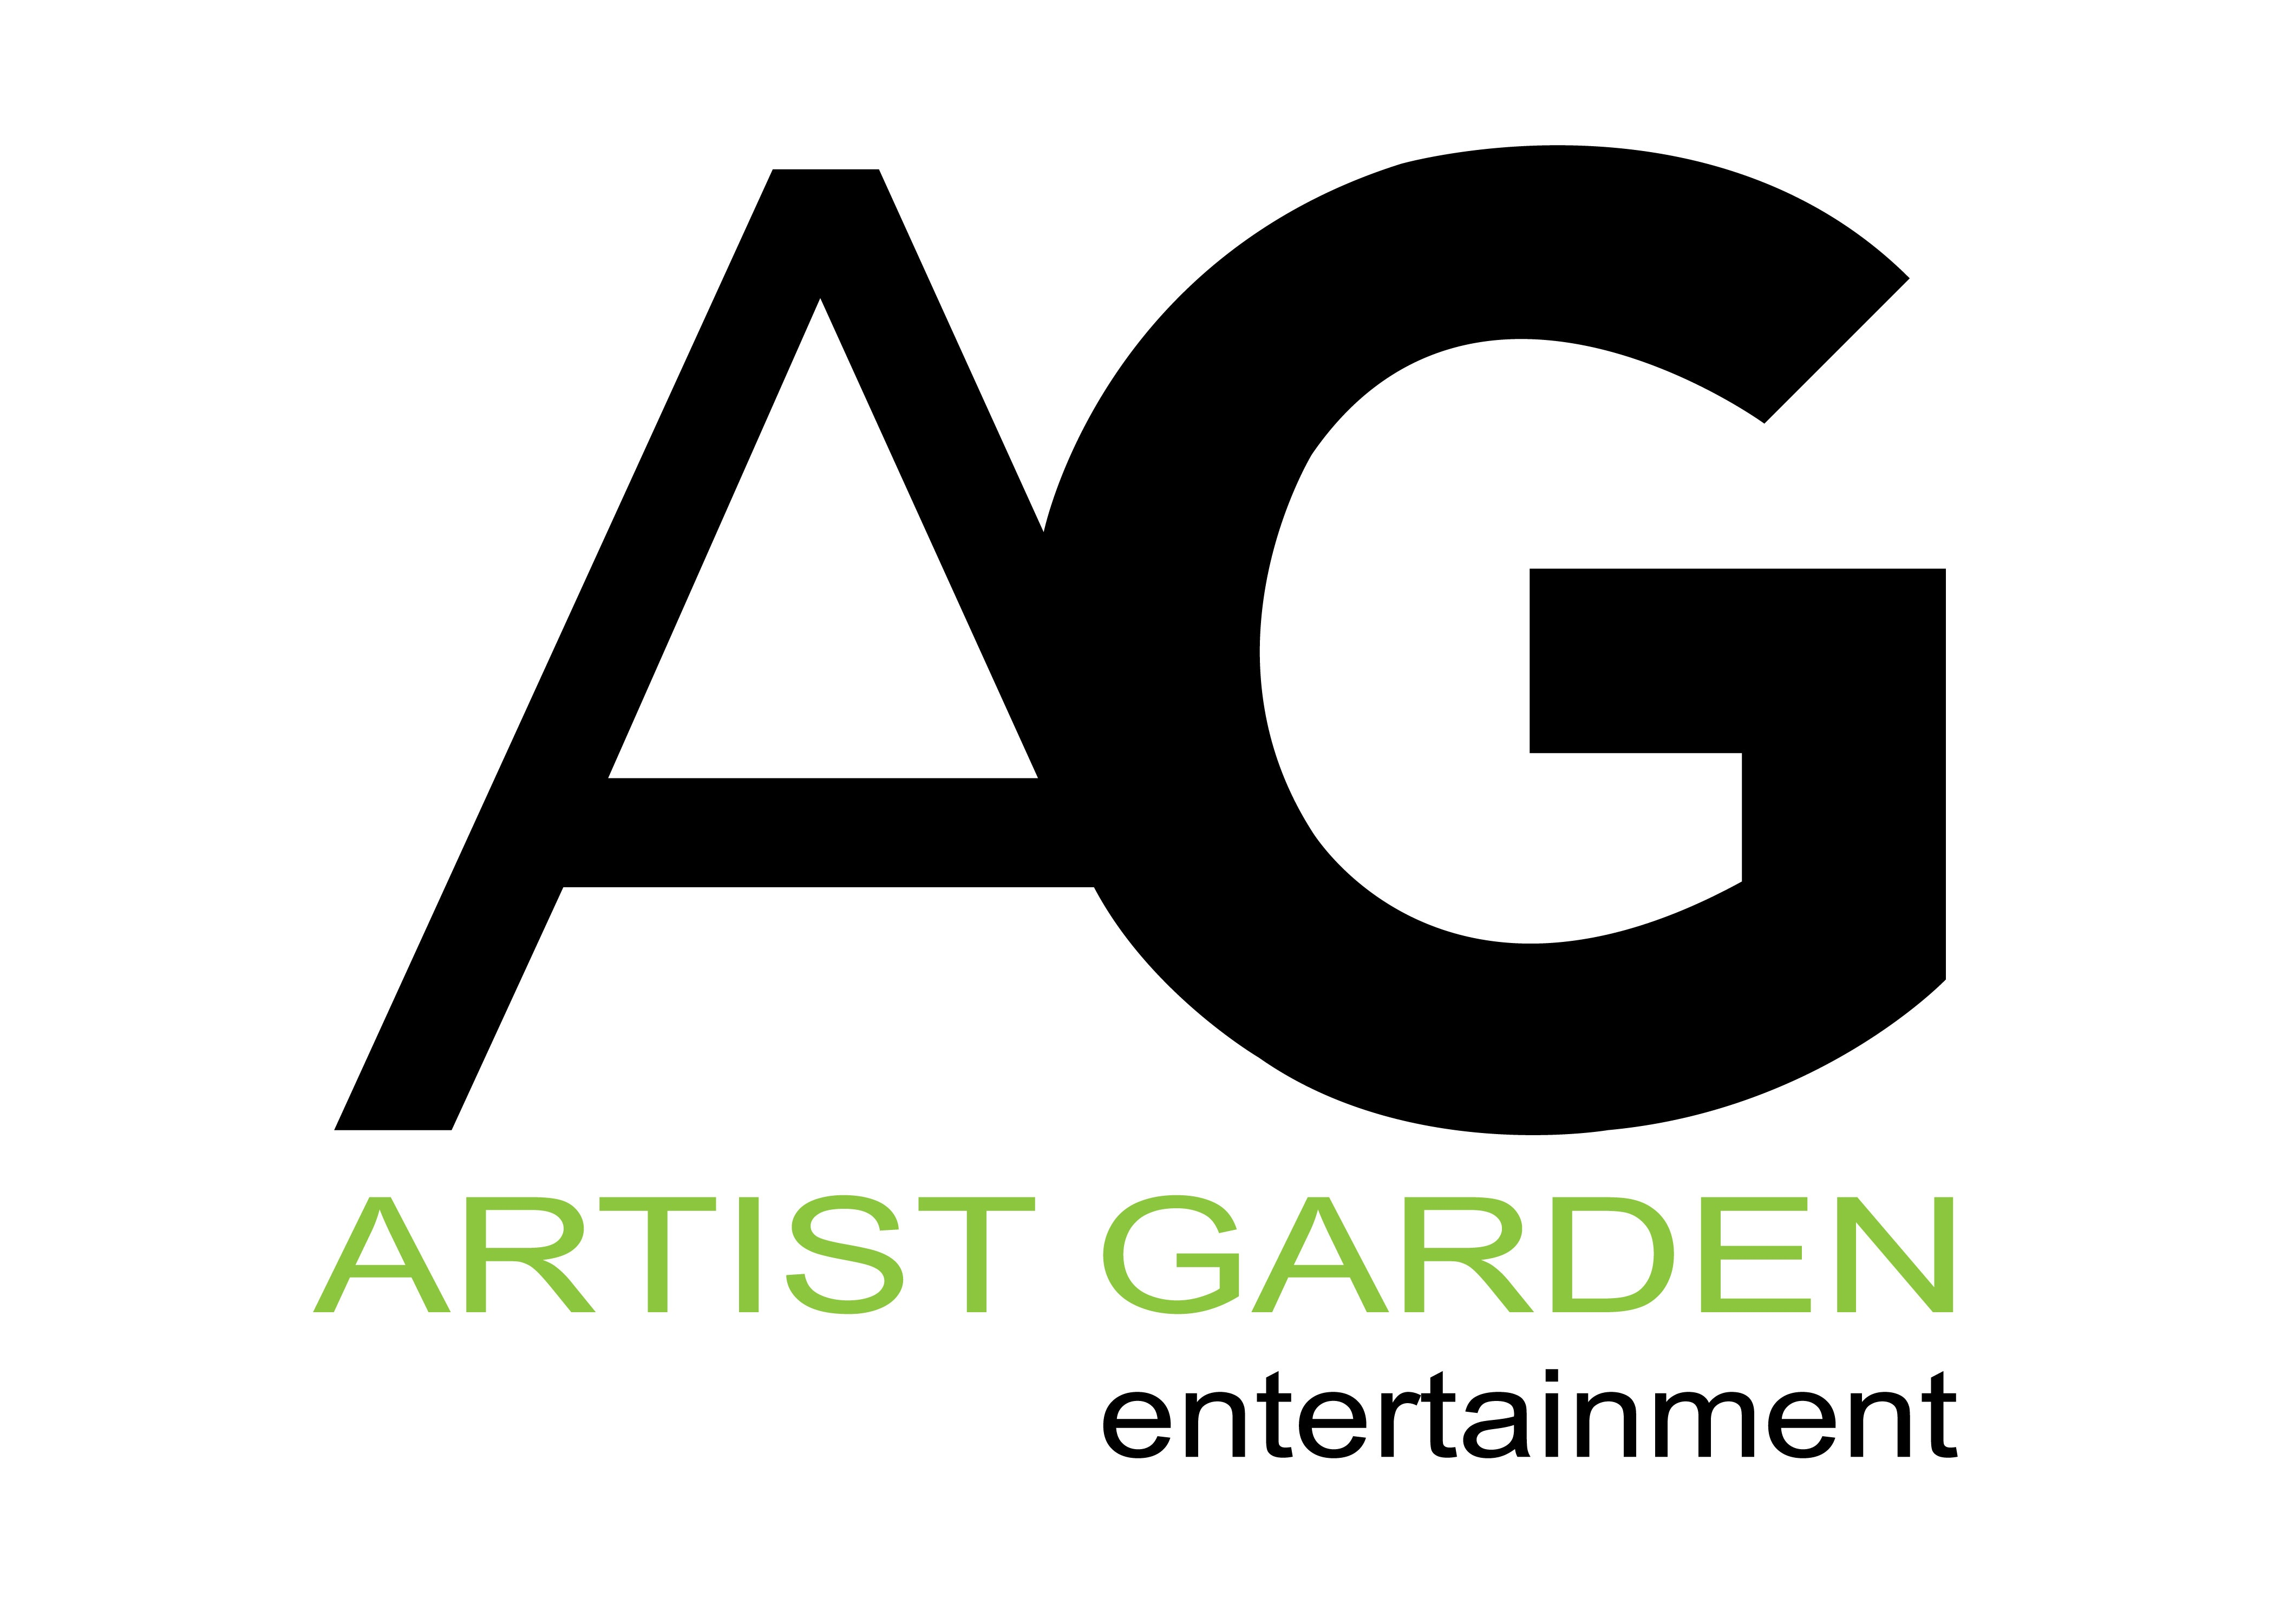 Artist Garden Entertainment